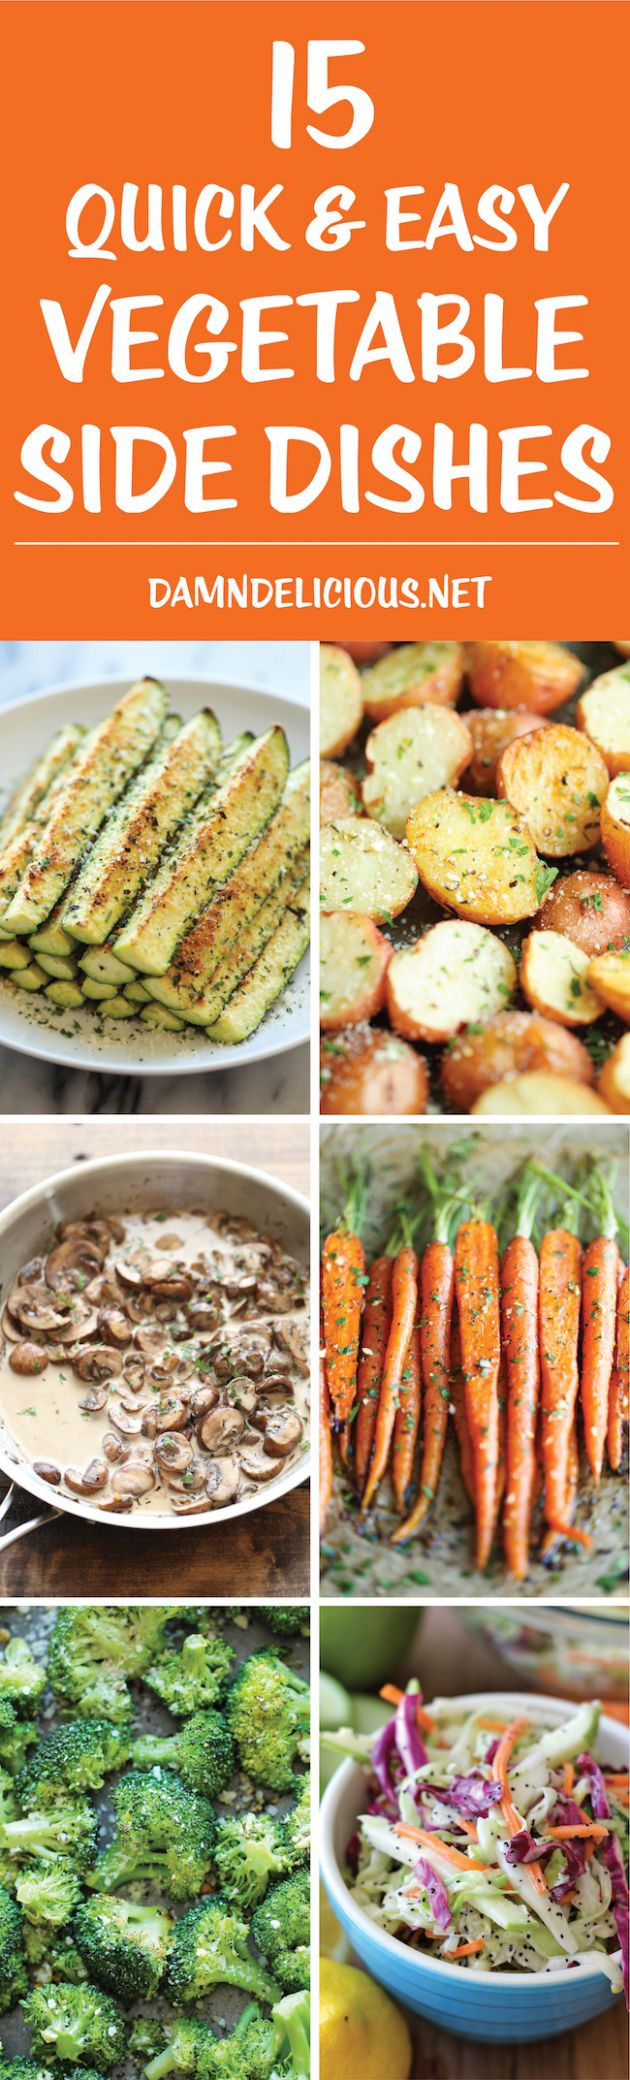 8 Quick and Easy Vegetable Side Dishes - Damn Delicious - Recipes Easy Vegetable Side Dish